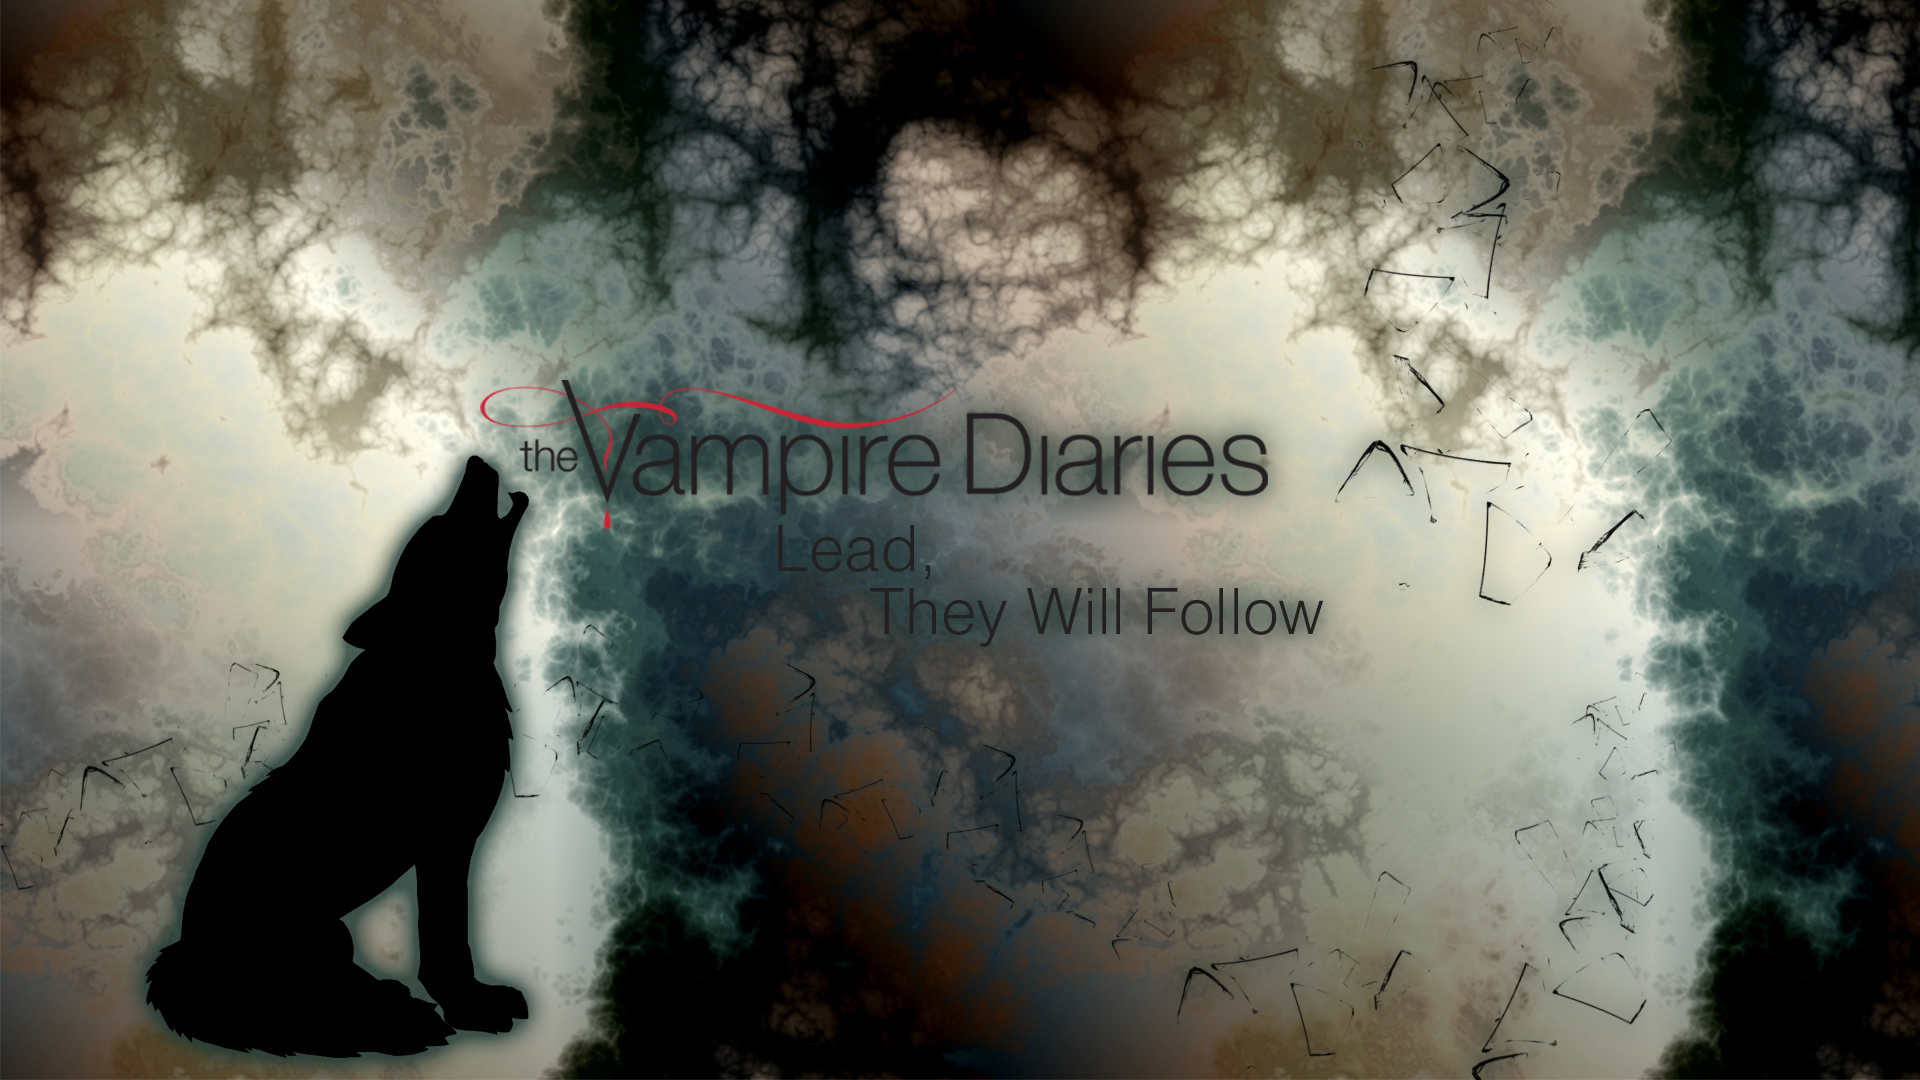 The Vampire Diaries hình nền Series